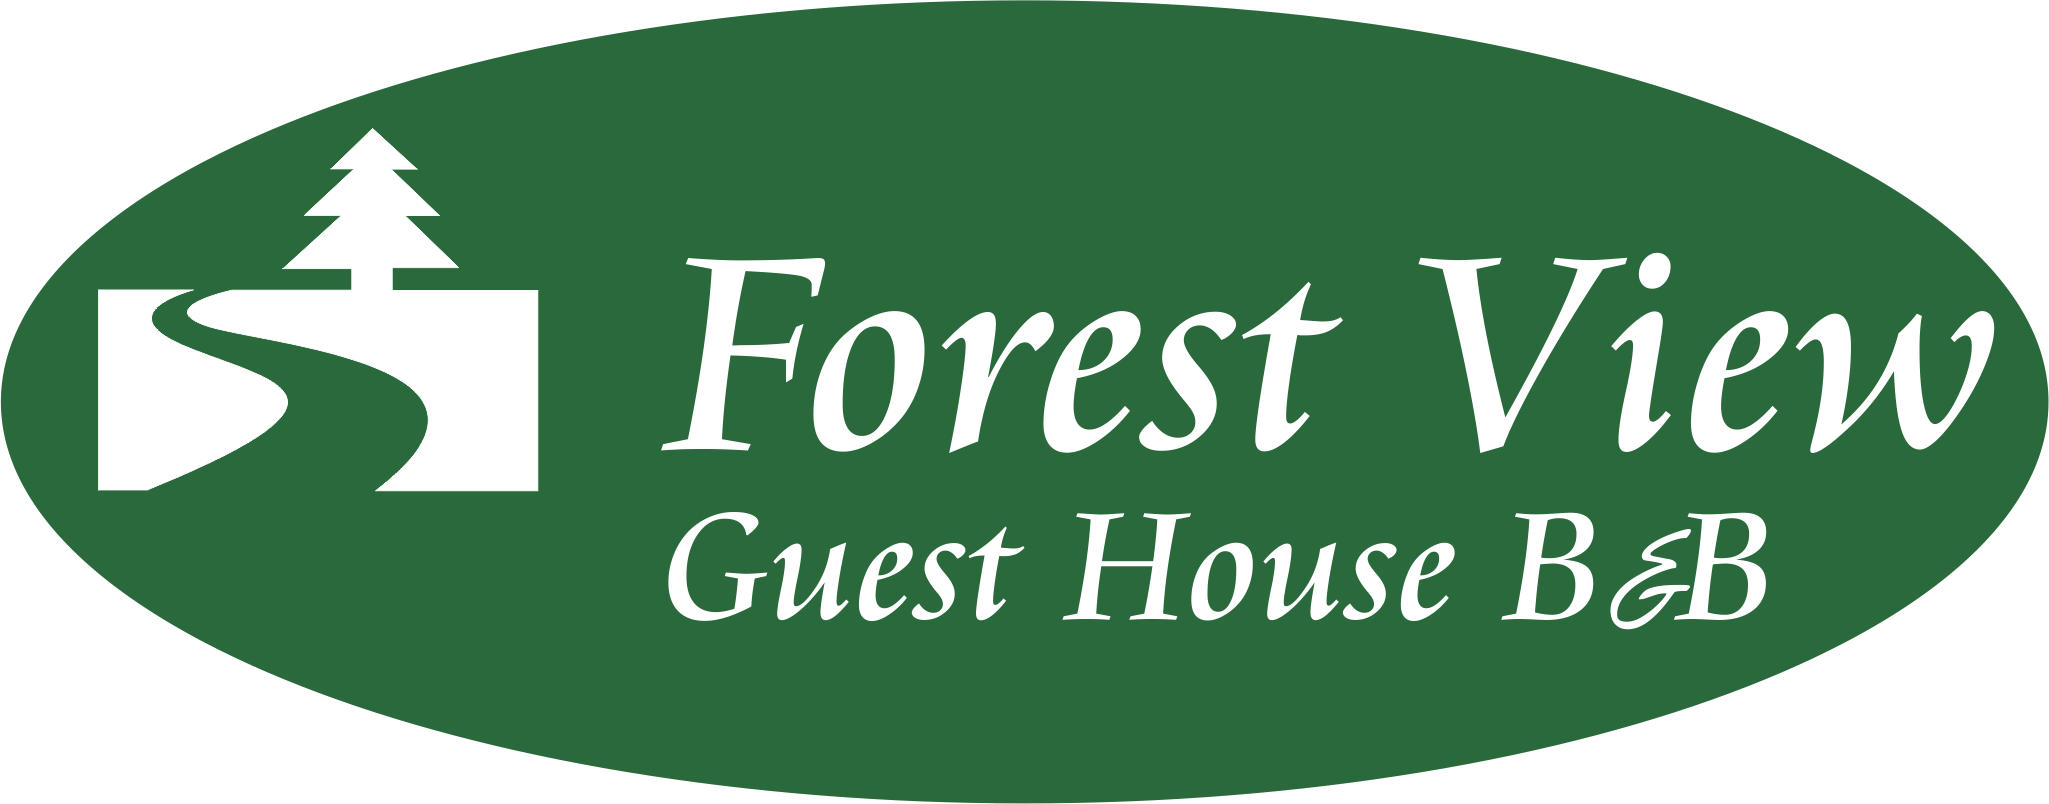 Forestview Guesthouse B&B